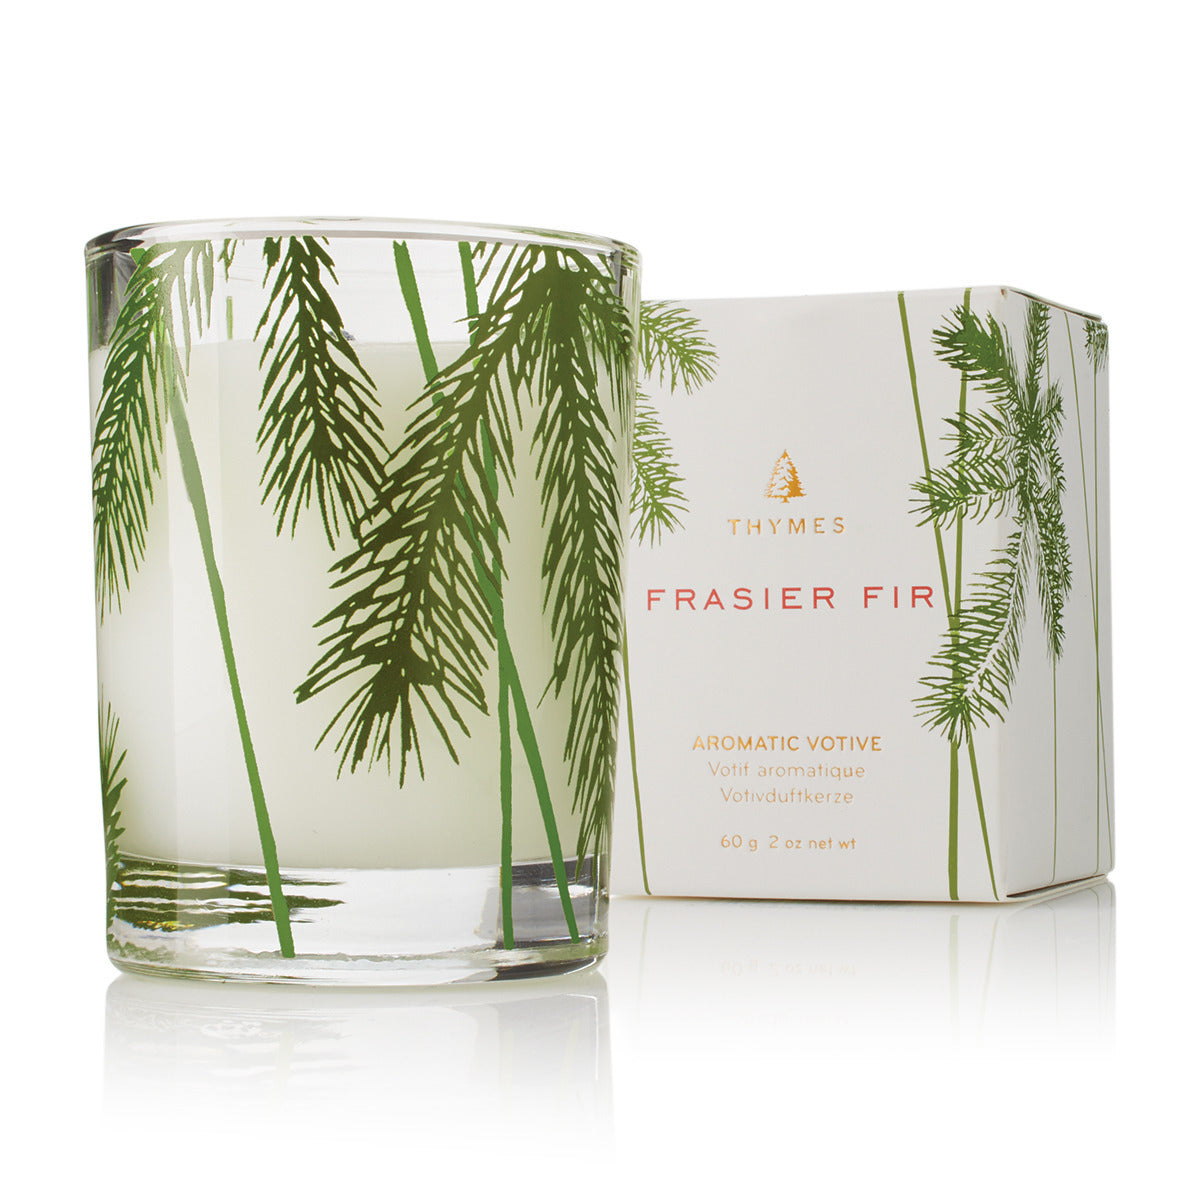 Thymes - Frasier Fir Votive Petite Pine Needle Candle